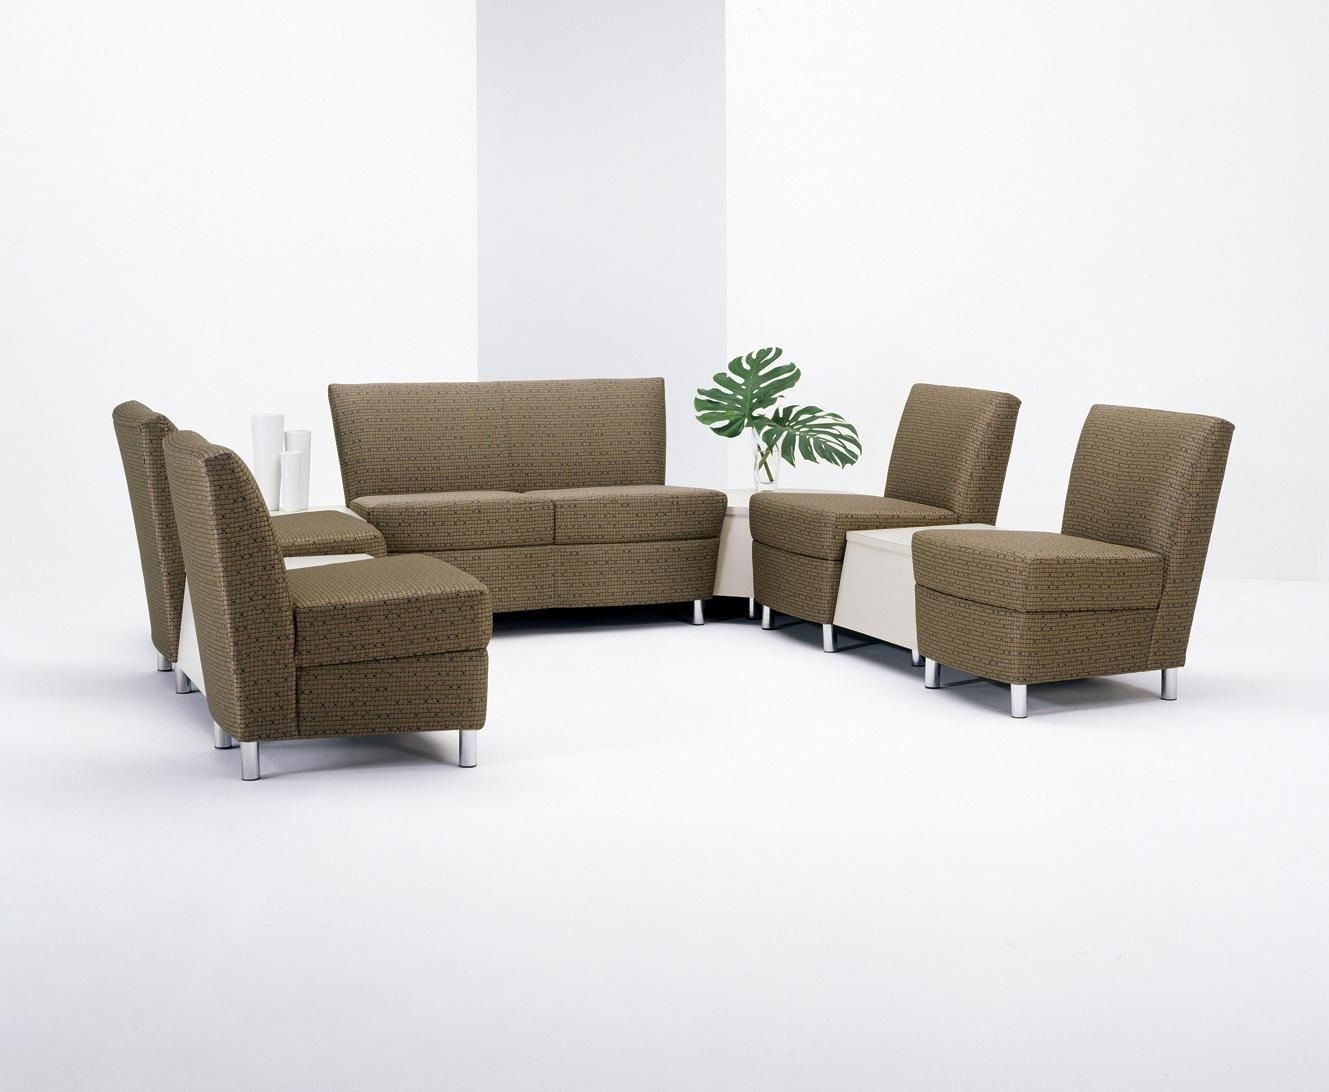 Waiting Room Sofas Hpfi 7403 Modern 3 Seat Waiting Room Sofa Custom Fabric Thesofa